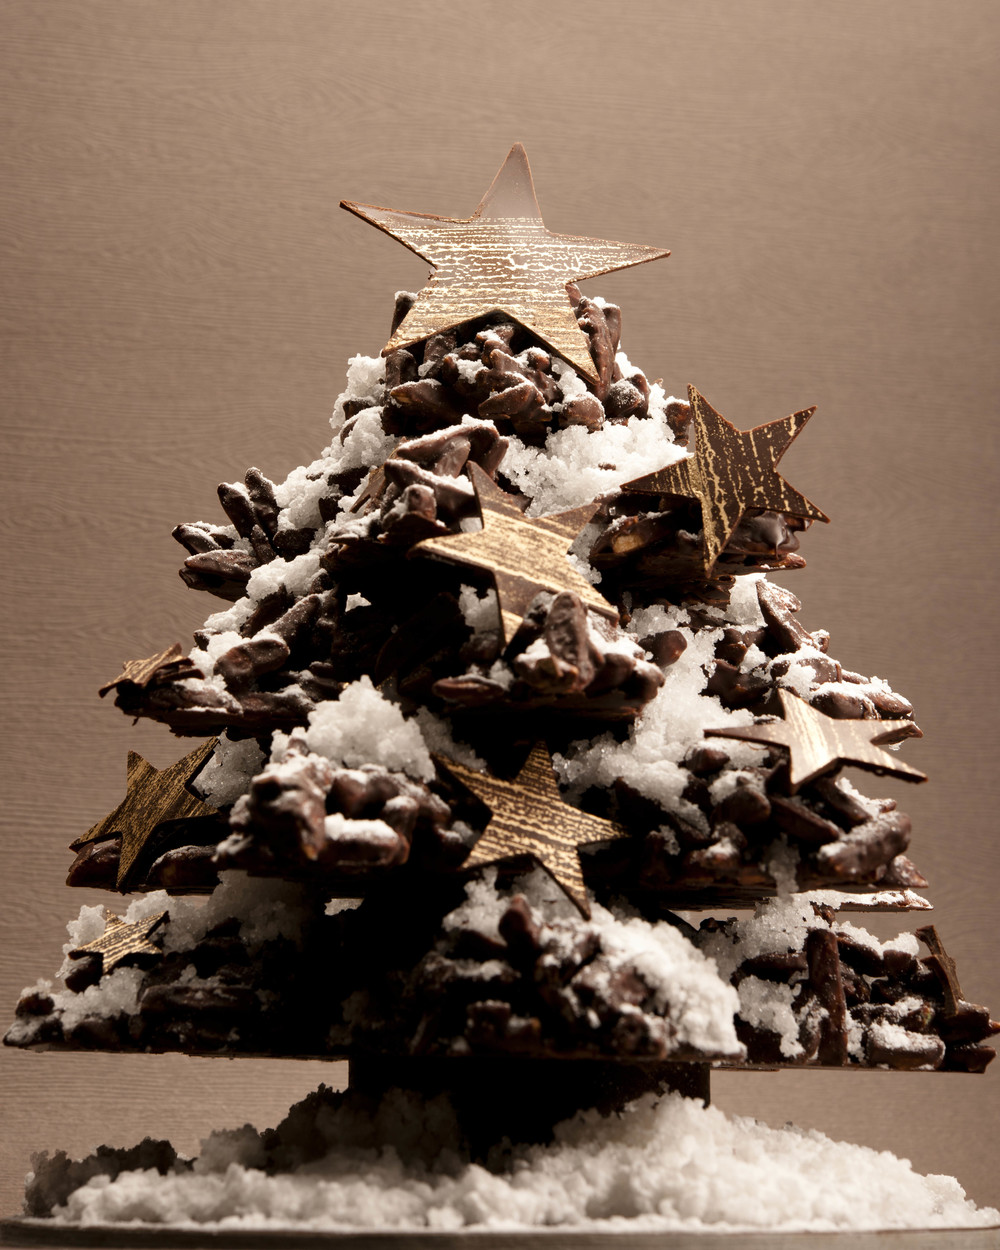 Chocolate Christmas Tree.jpg